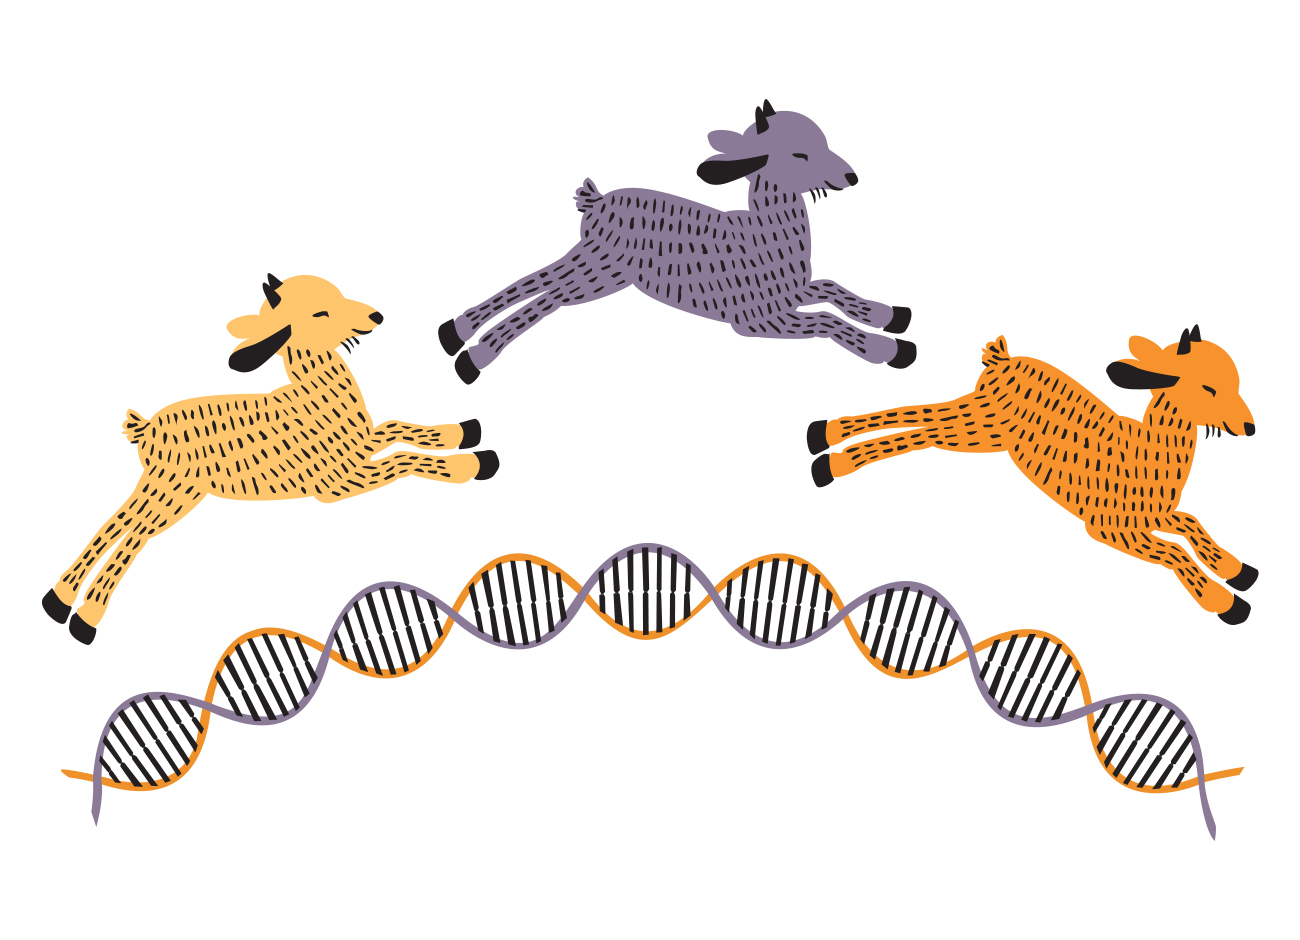 Illustration of goats jumping over strands of DNA.